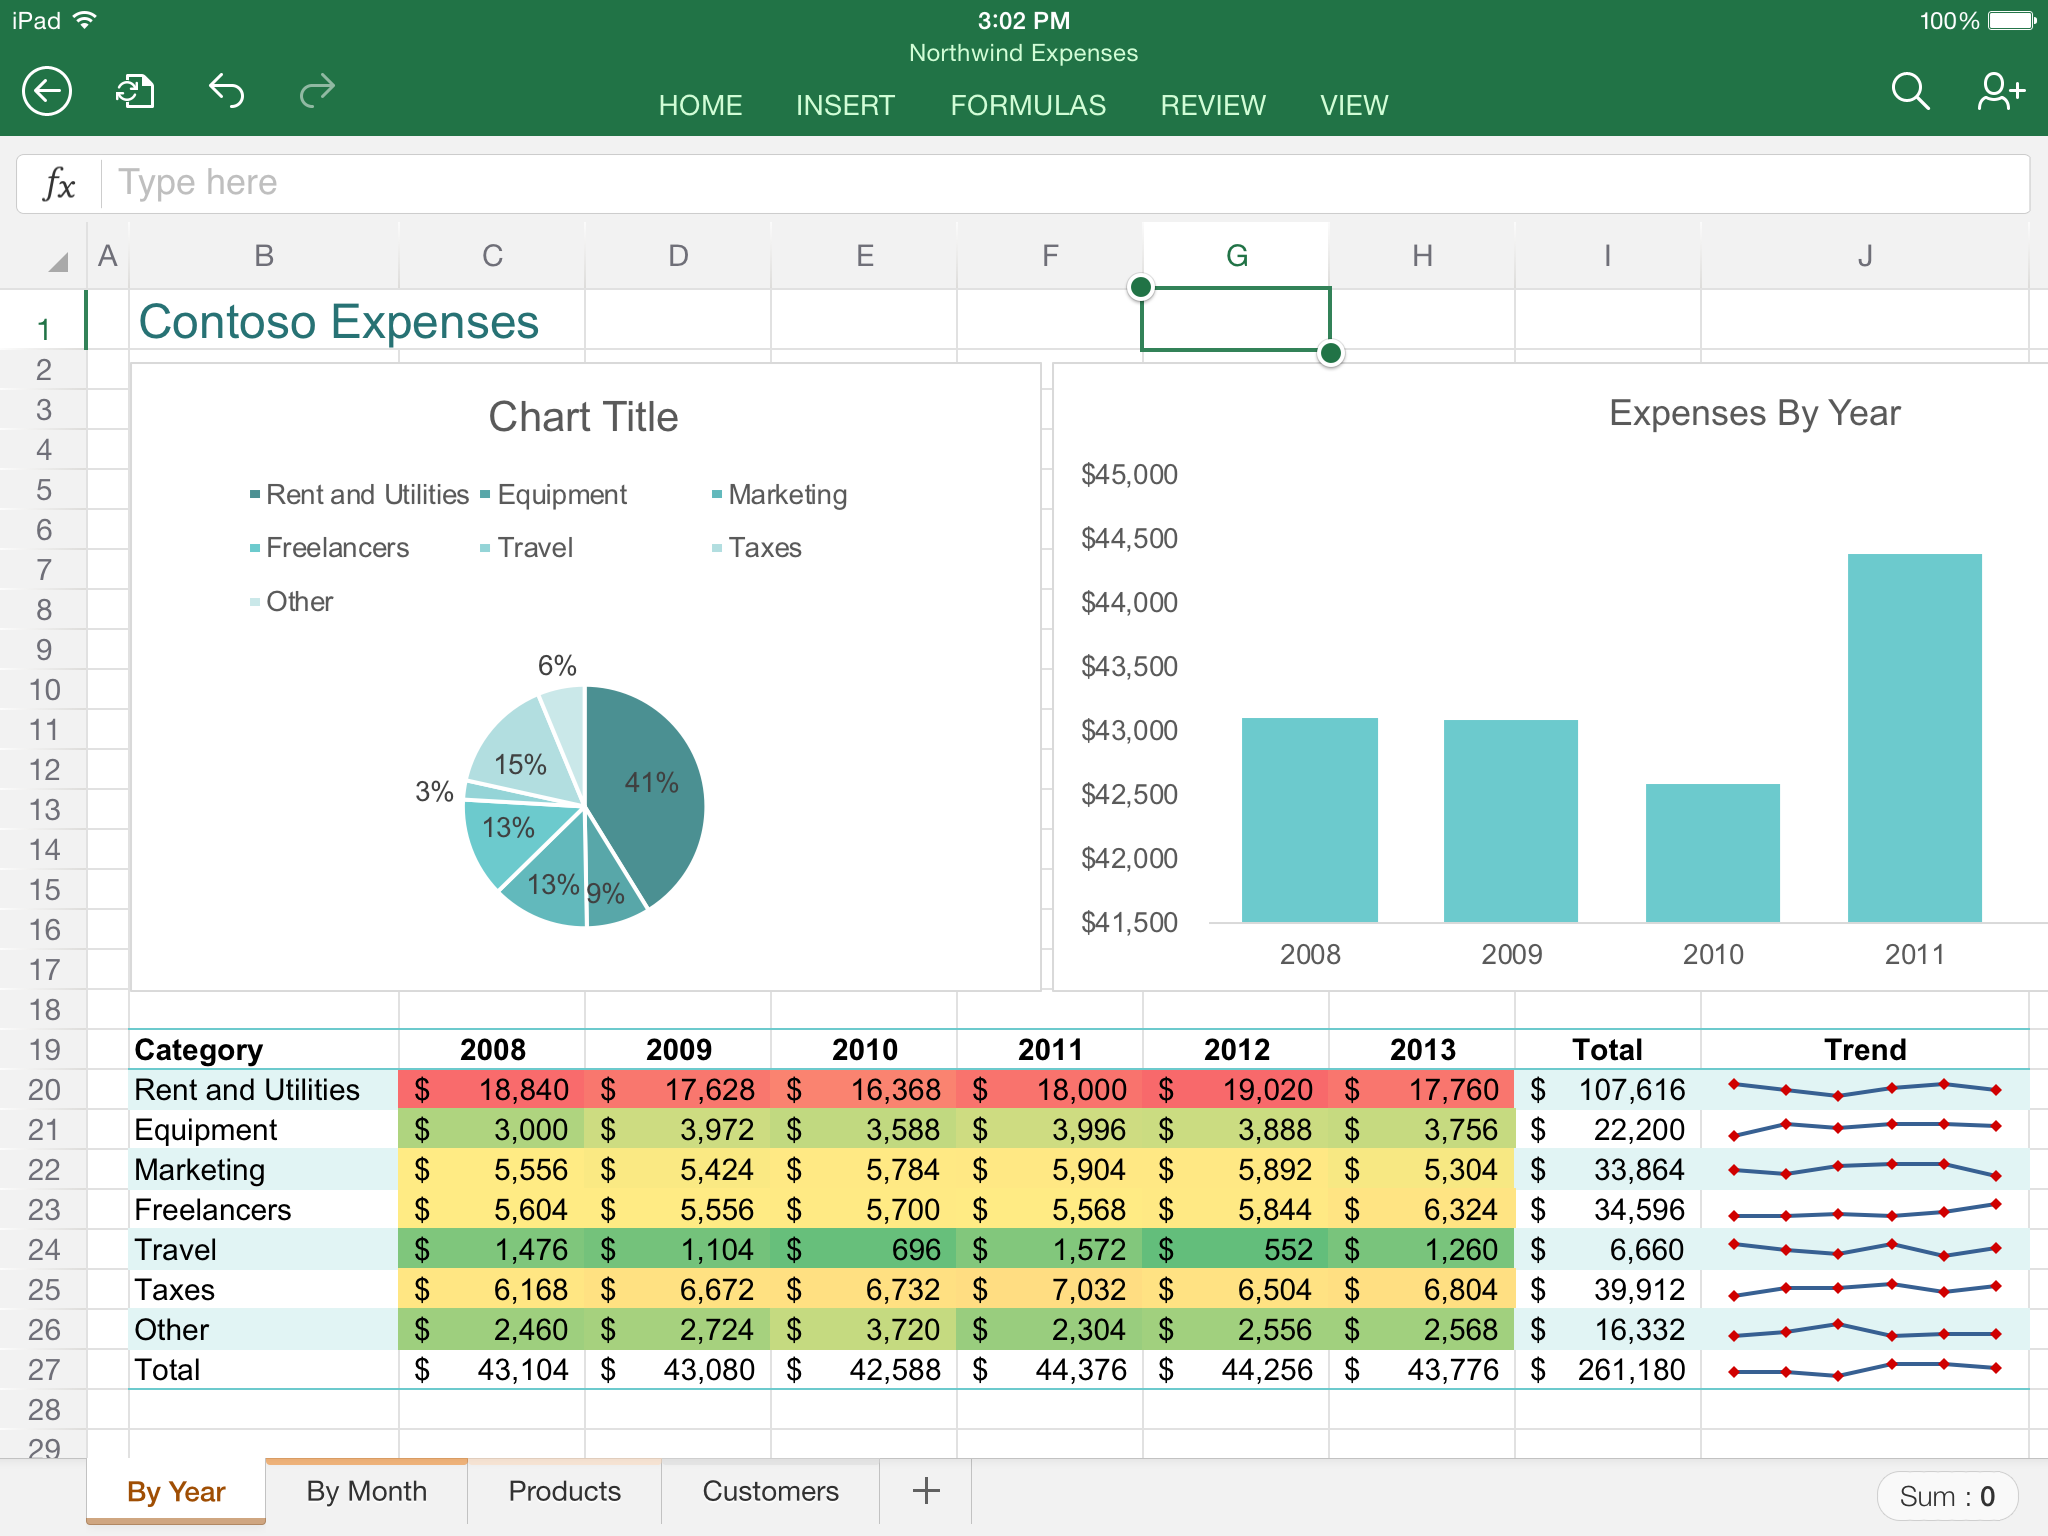 Ediblewildsus  Outstanding App Highlight Excel  Mobile Digital Now With Fascinating Excel In Action With Astounding Pivot Table Excel For Dummies Also Mode Function In Excel In Addition Pdf Excel Convertor And Project Plan Examples In Excel As Well As Using Excel In Accounting Additionally Sort Names In Excel From Youstonybrookedu With Ediblewildsus  Fascinating App Highlight Excel  Mobile Digital Now With Astounding Excel In Action And Outstanding Pivot Table Excel For Dummies Also Mode Function In Excel In Addition Pdf Excel Convertor From Youstonybrookedu